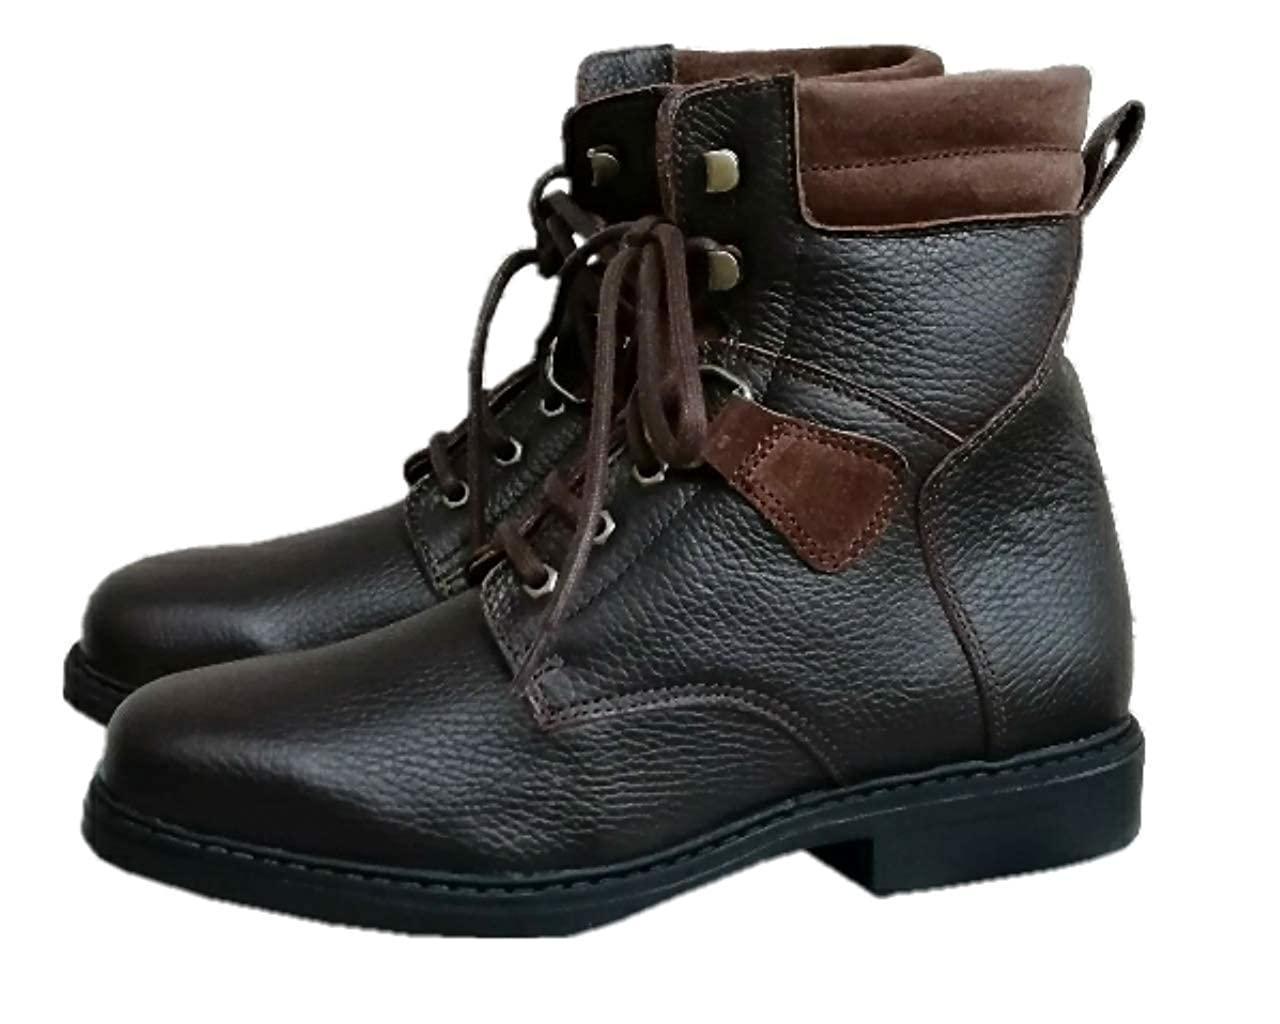 Hobo Winter Stiefelette High Savanne mit Lammfell, torro Maroon